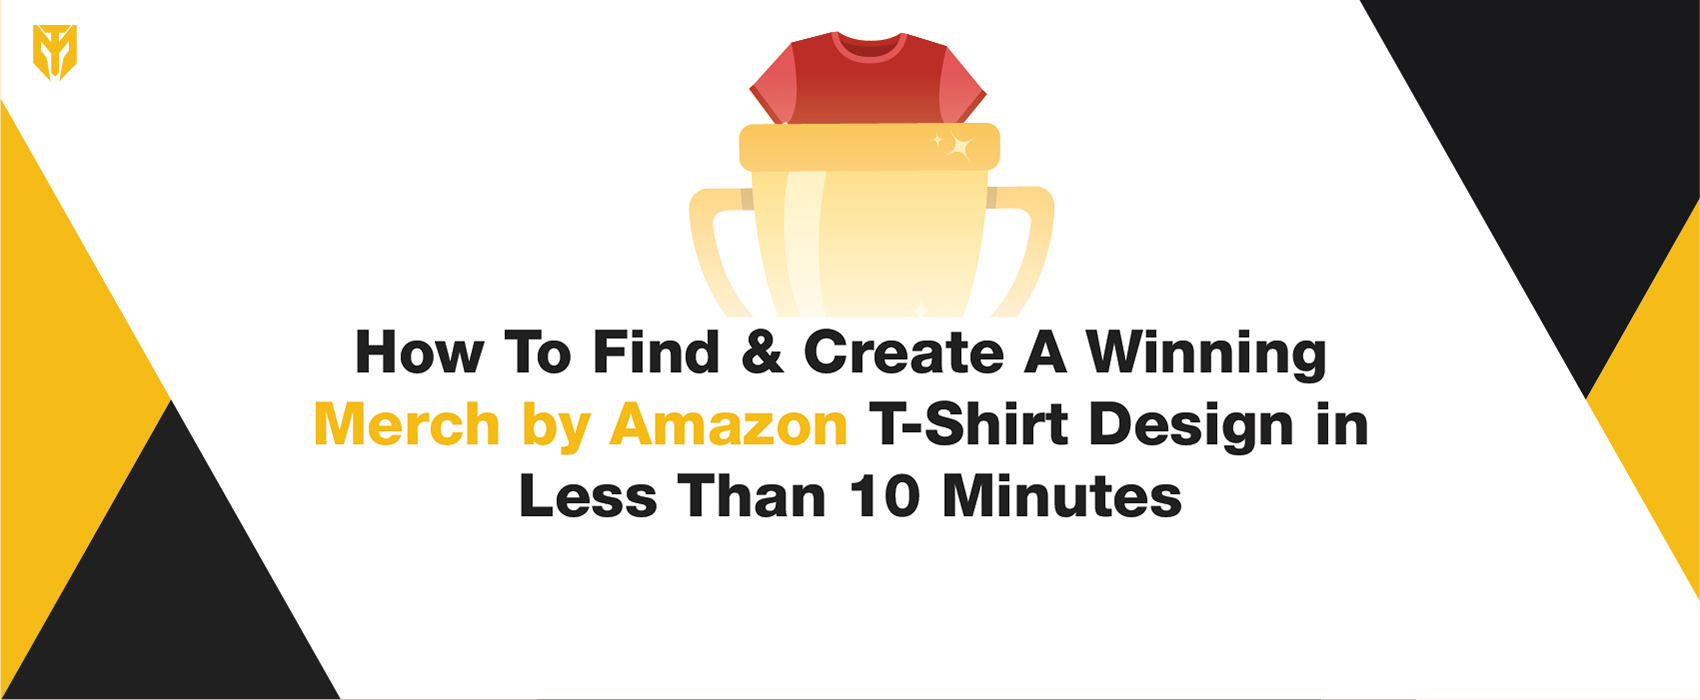 Create A Winning Merch by Amazon T-Shirt Design in Less Than 10 Minutes